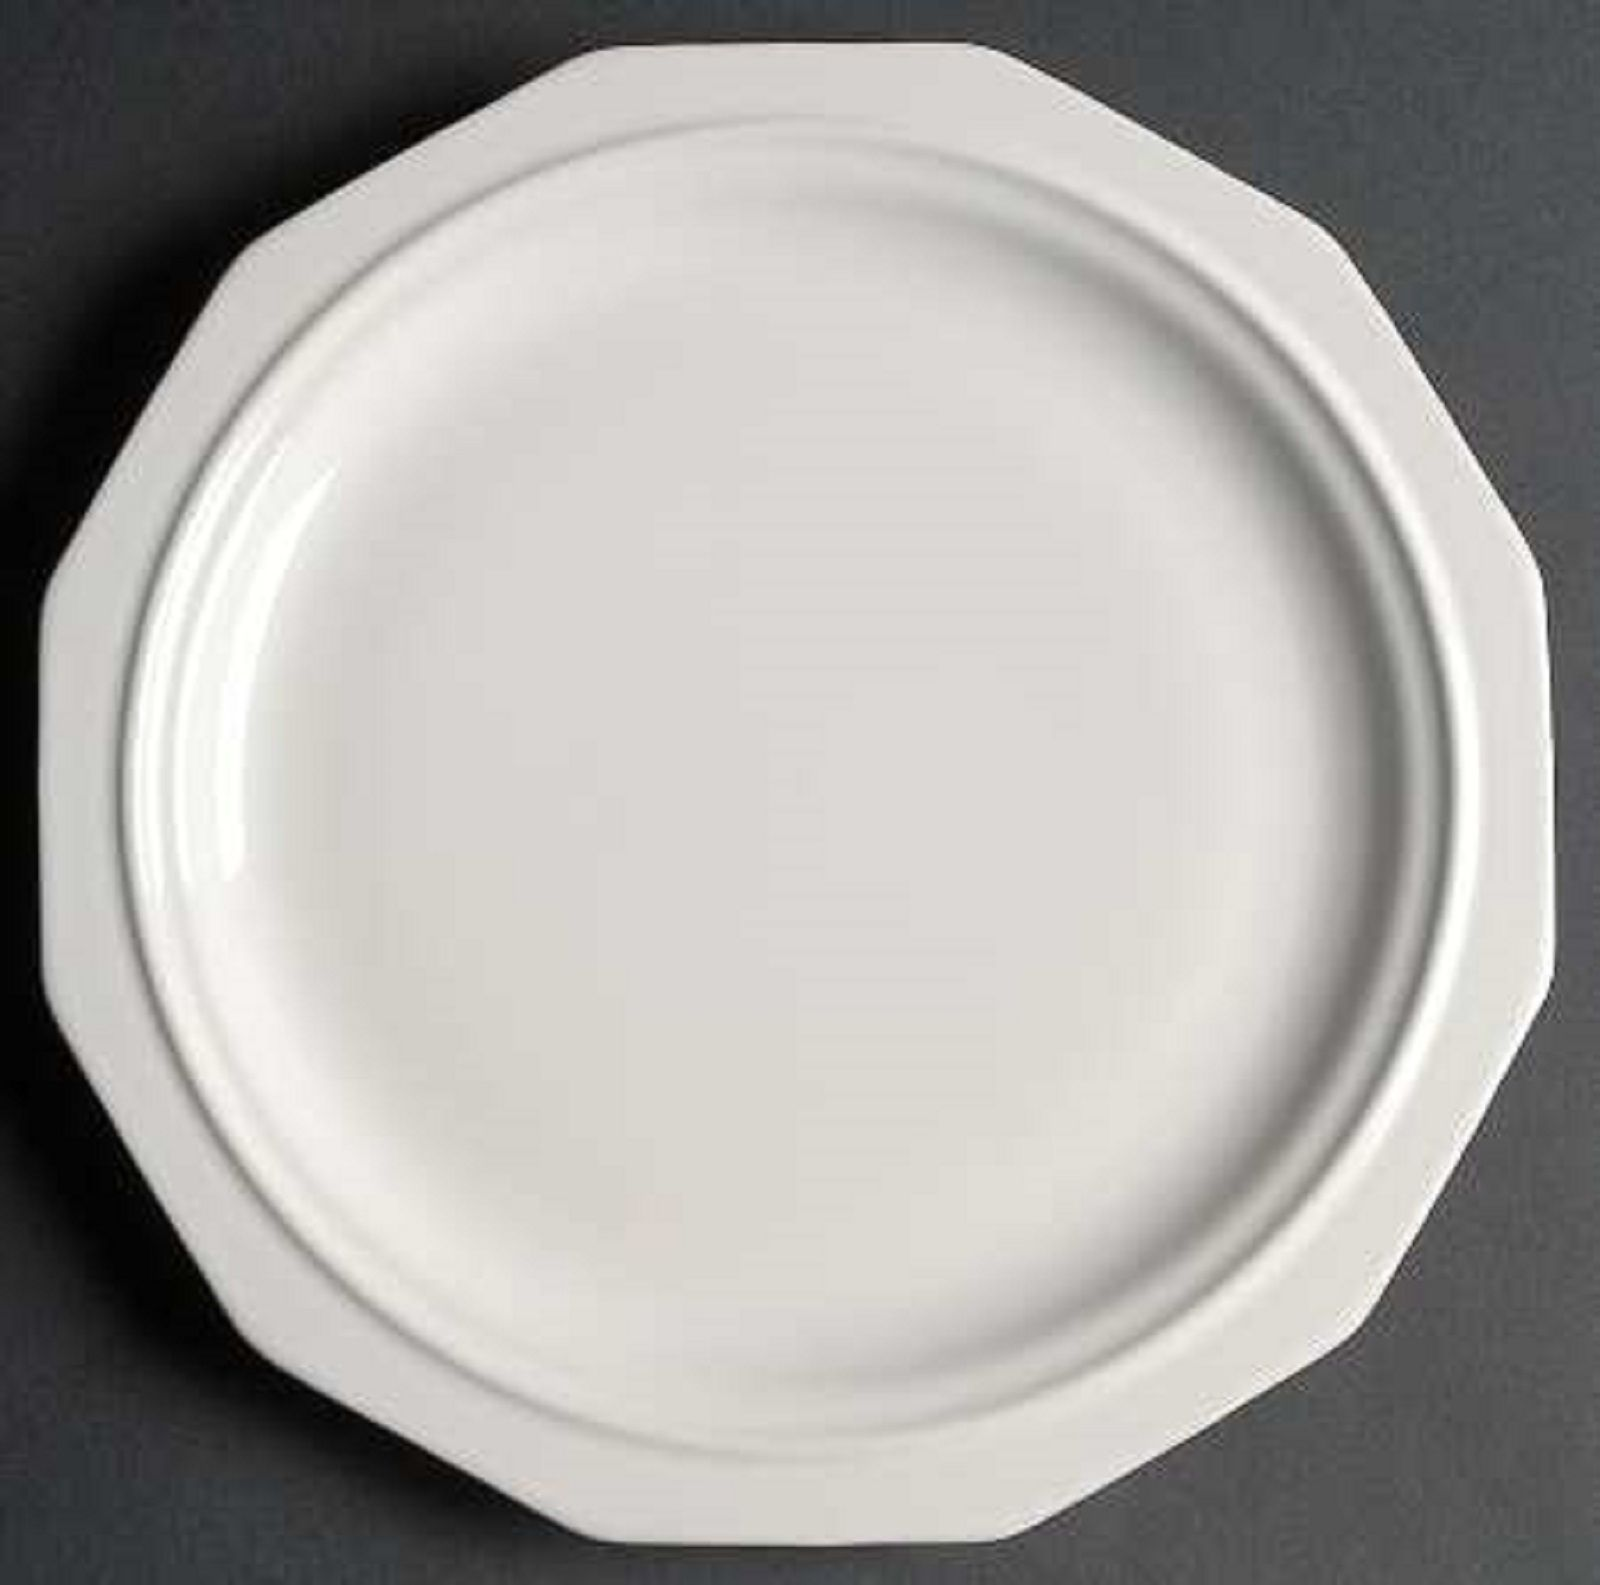 12 USA Pfaltzgraff Heritage White 12 Sided 10 1/8  DINNER PLATES 1963+ & 12 USA Pfaltzgraff Heritage White 12 Sided and 10 similar items